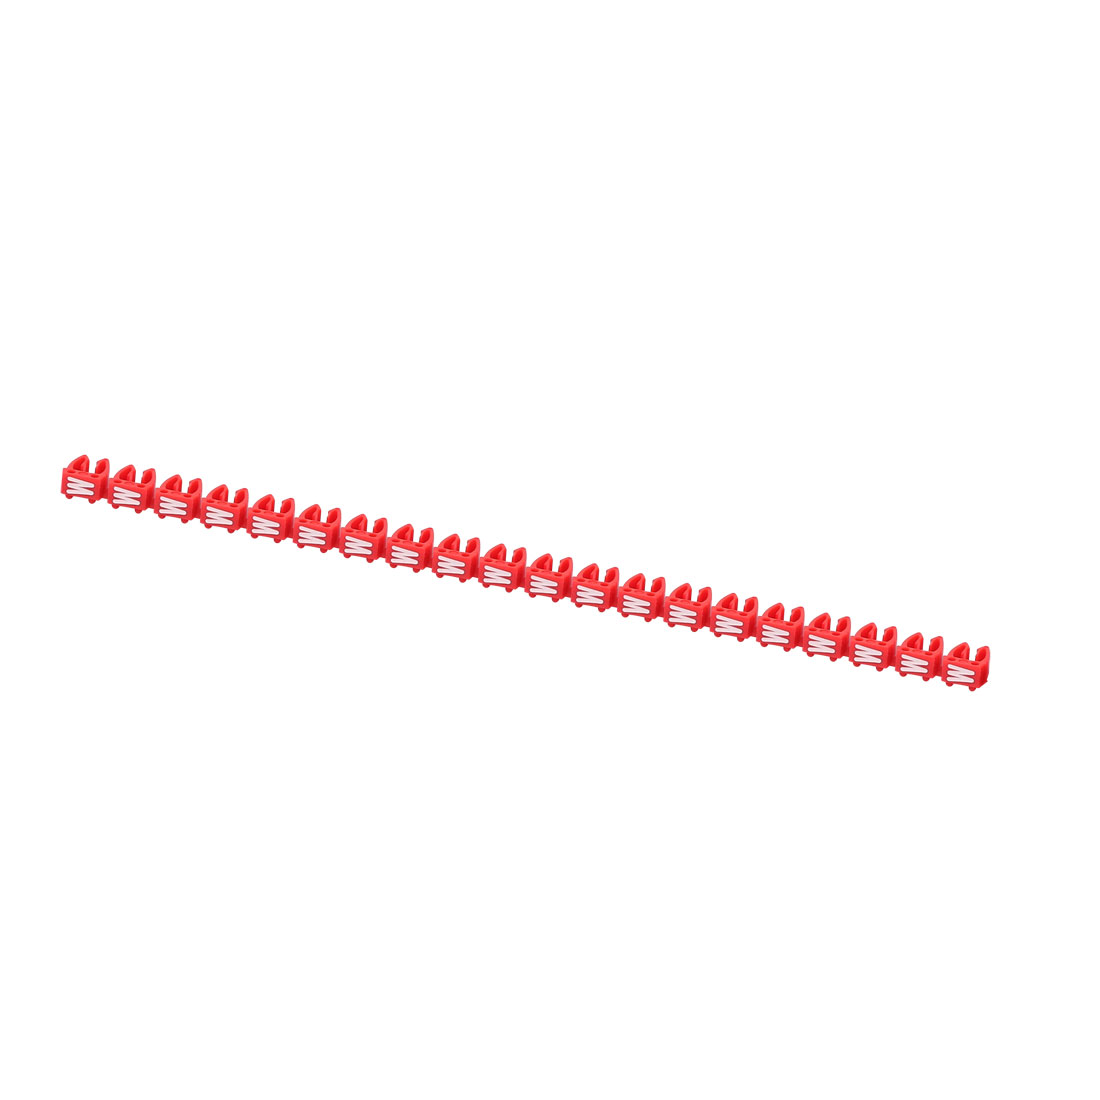 20 Pcs Letters W Network Cable Labels Markers Red for 4.0-6.0mm Dia Cable